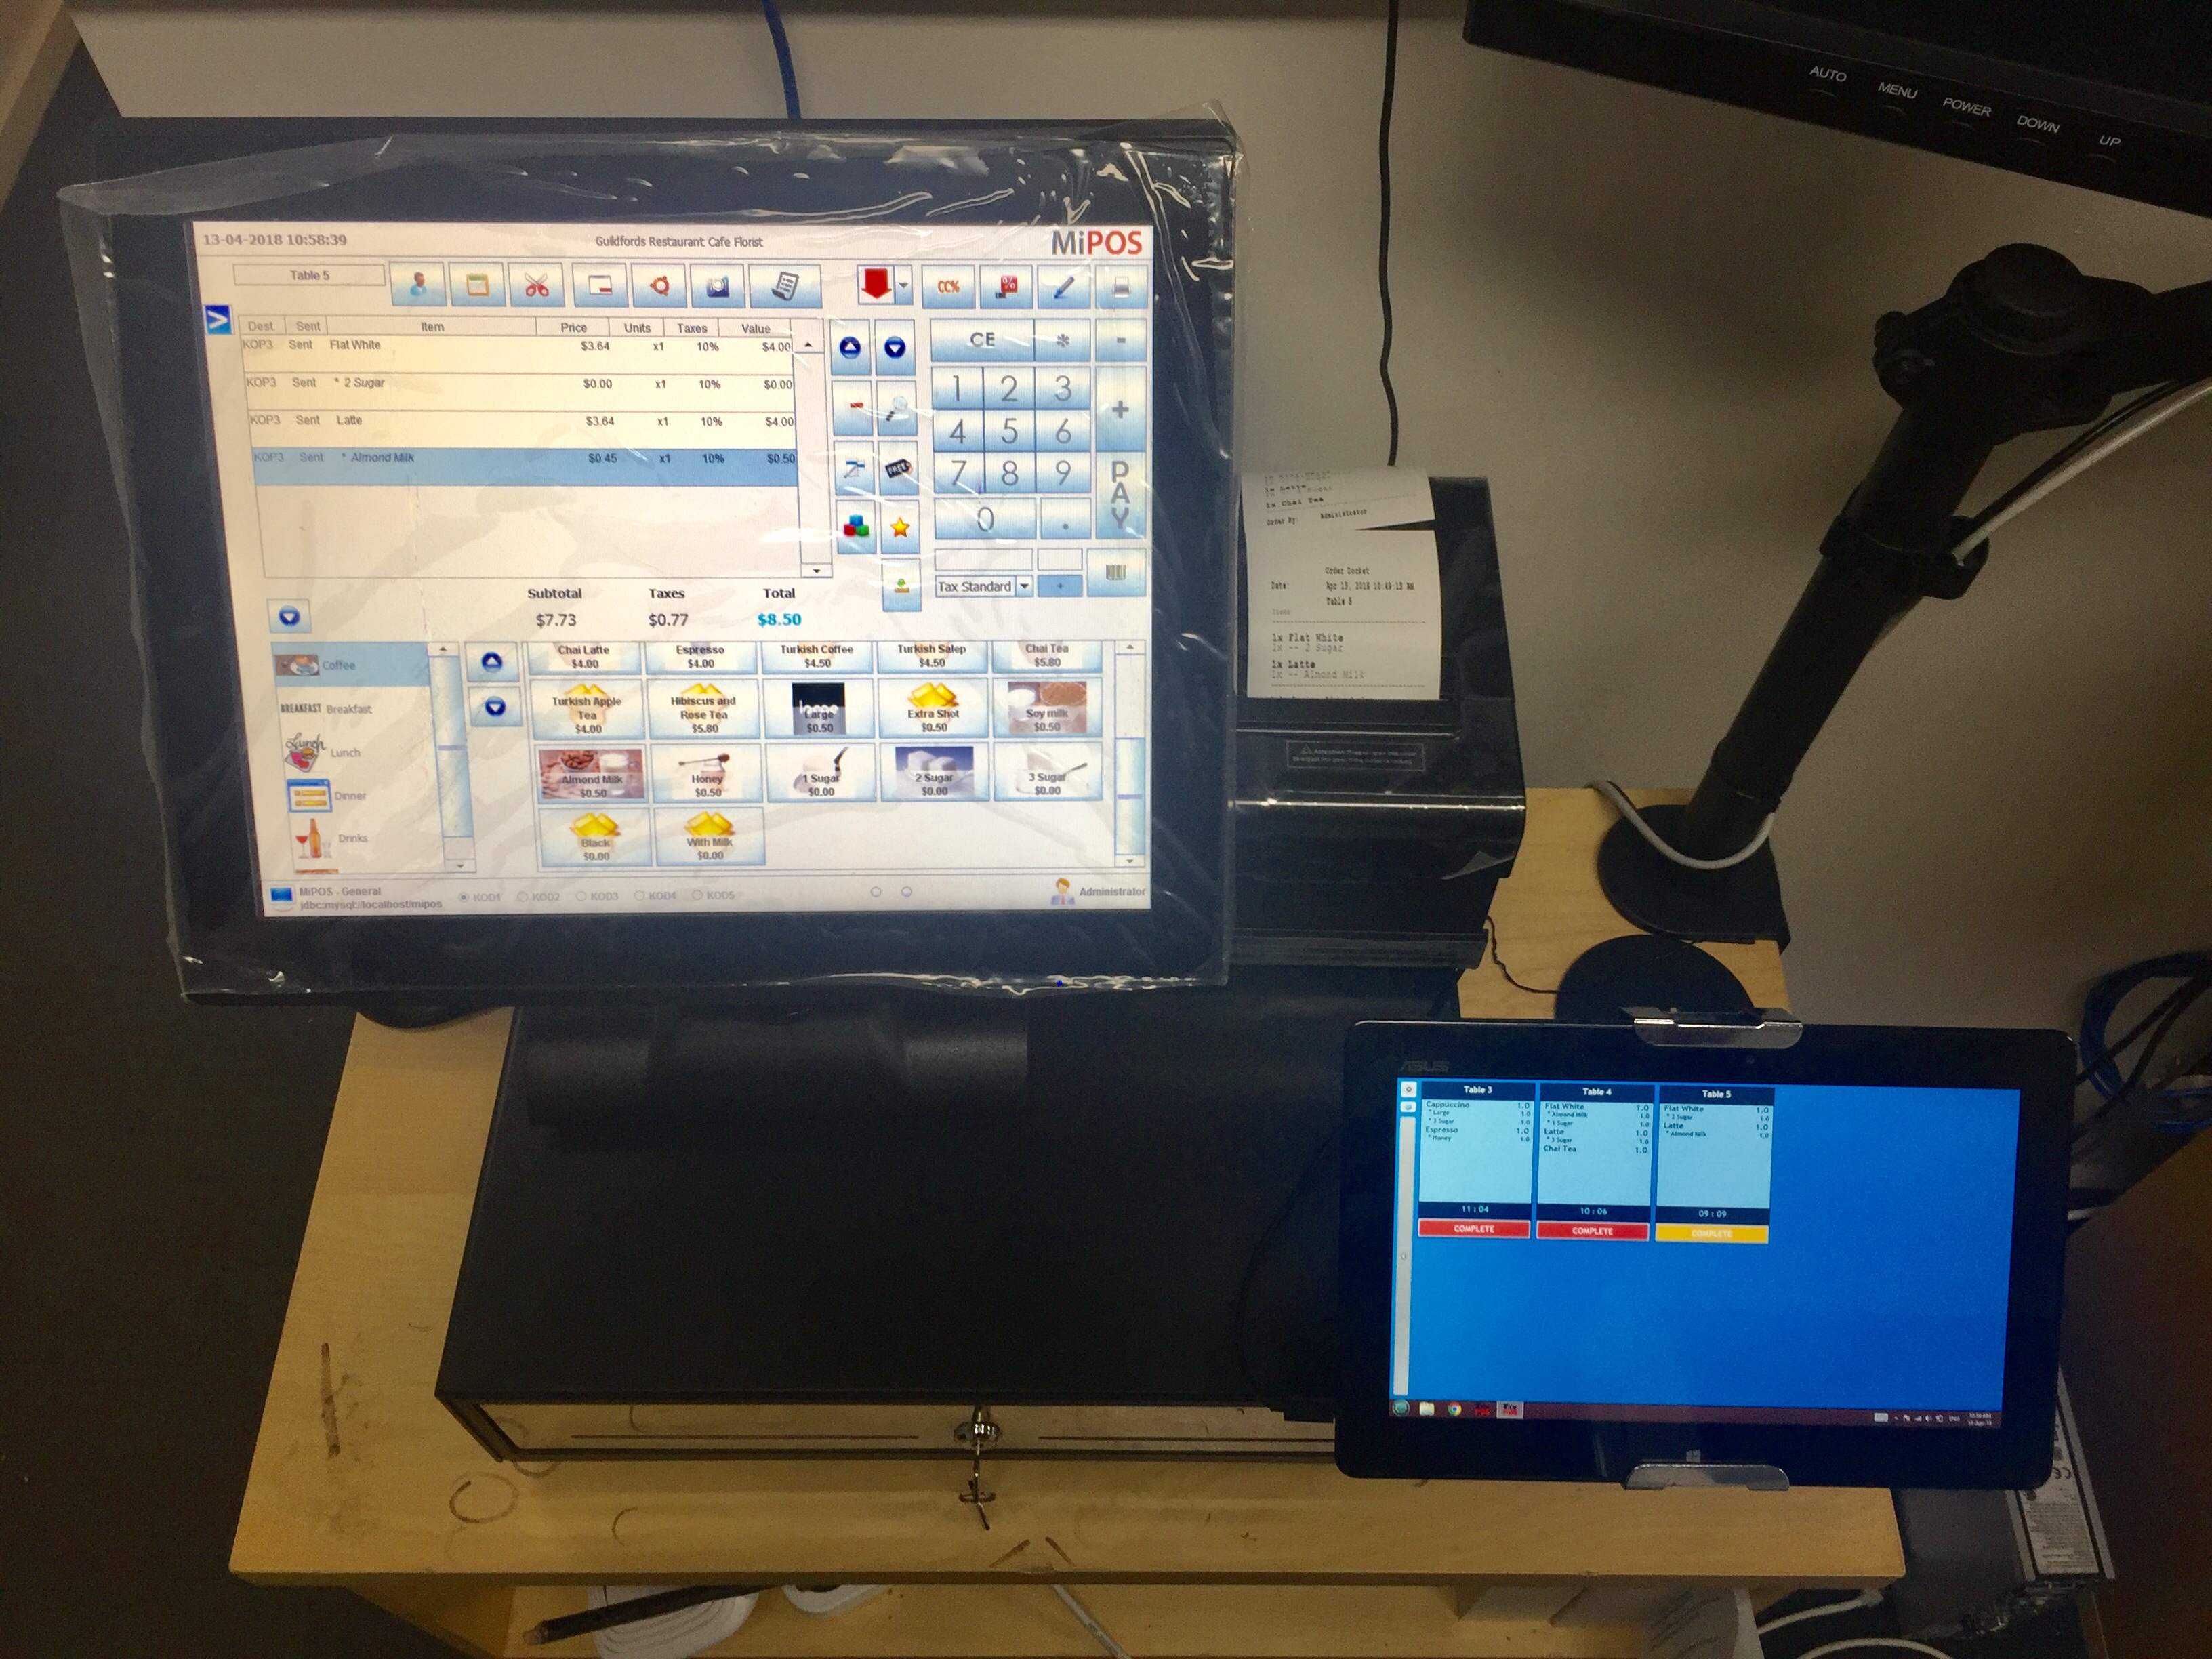 MiPOS Cafe POS System with Bump Screen